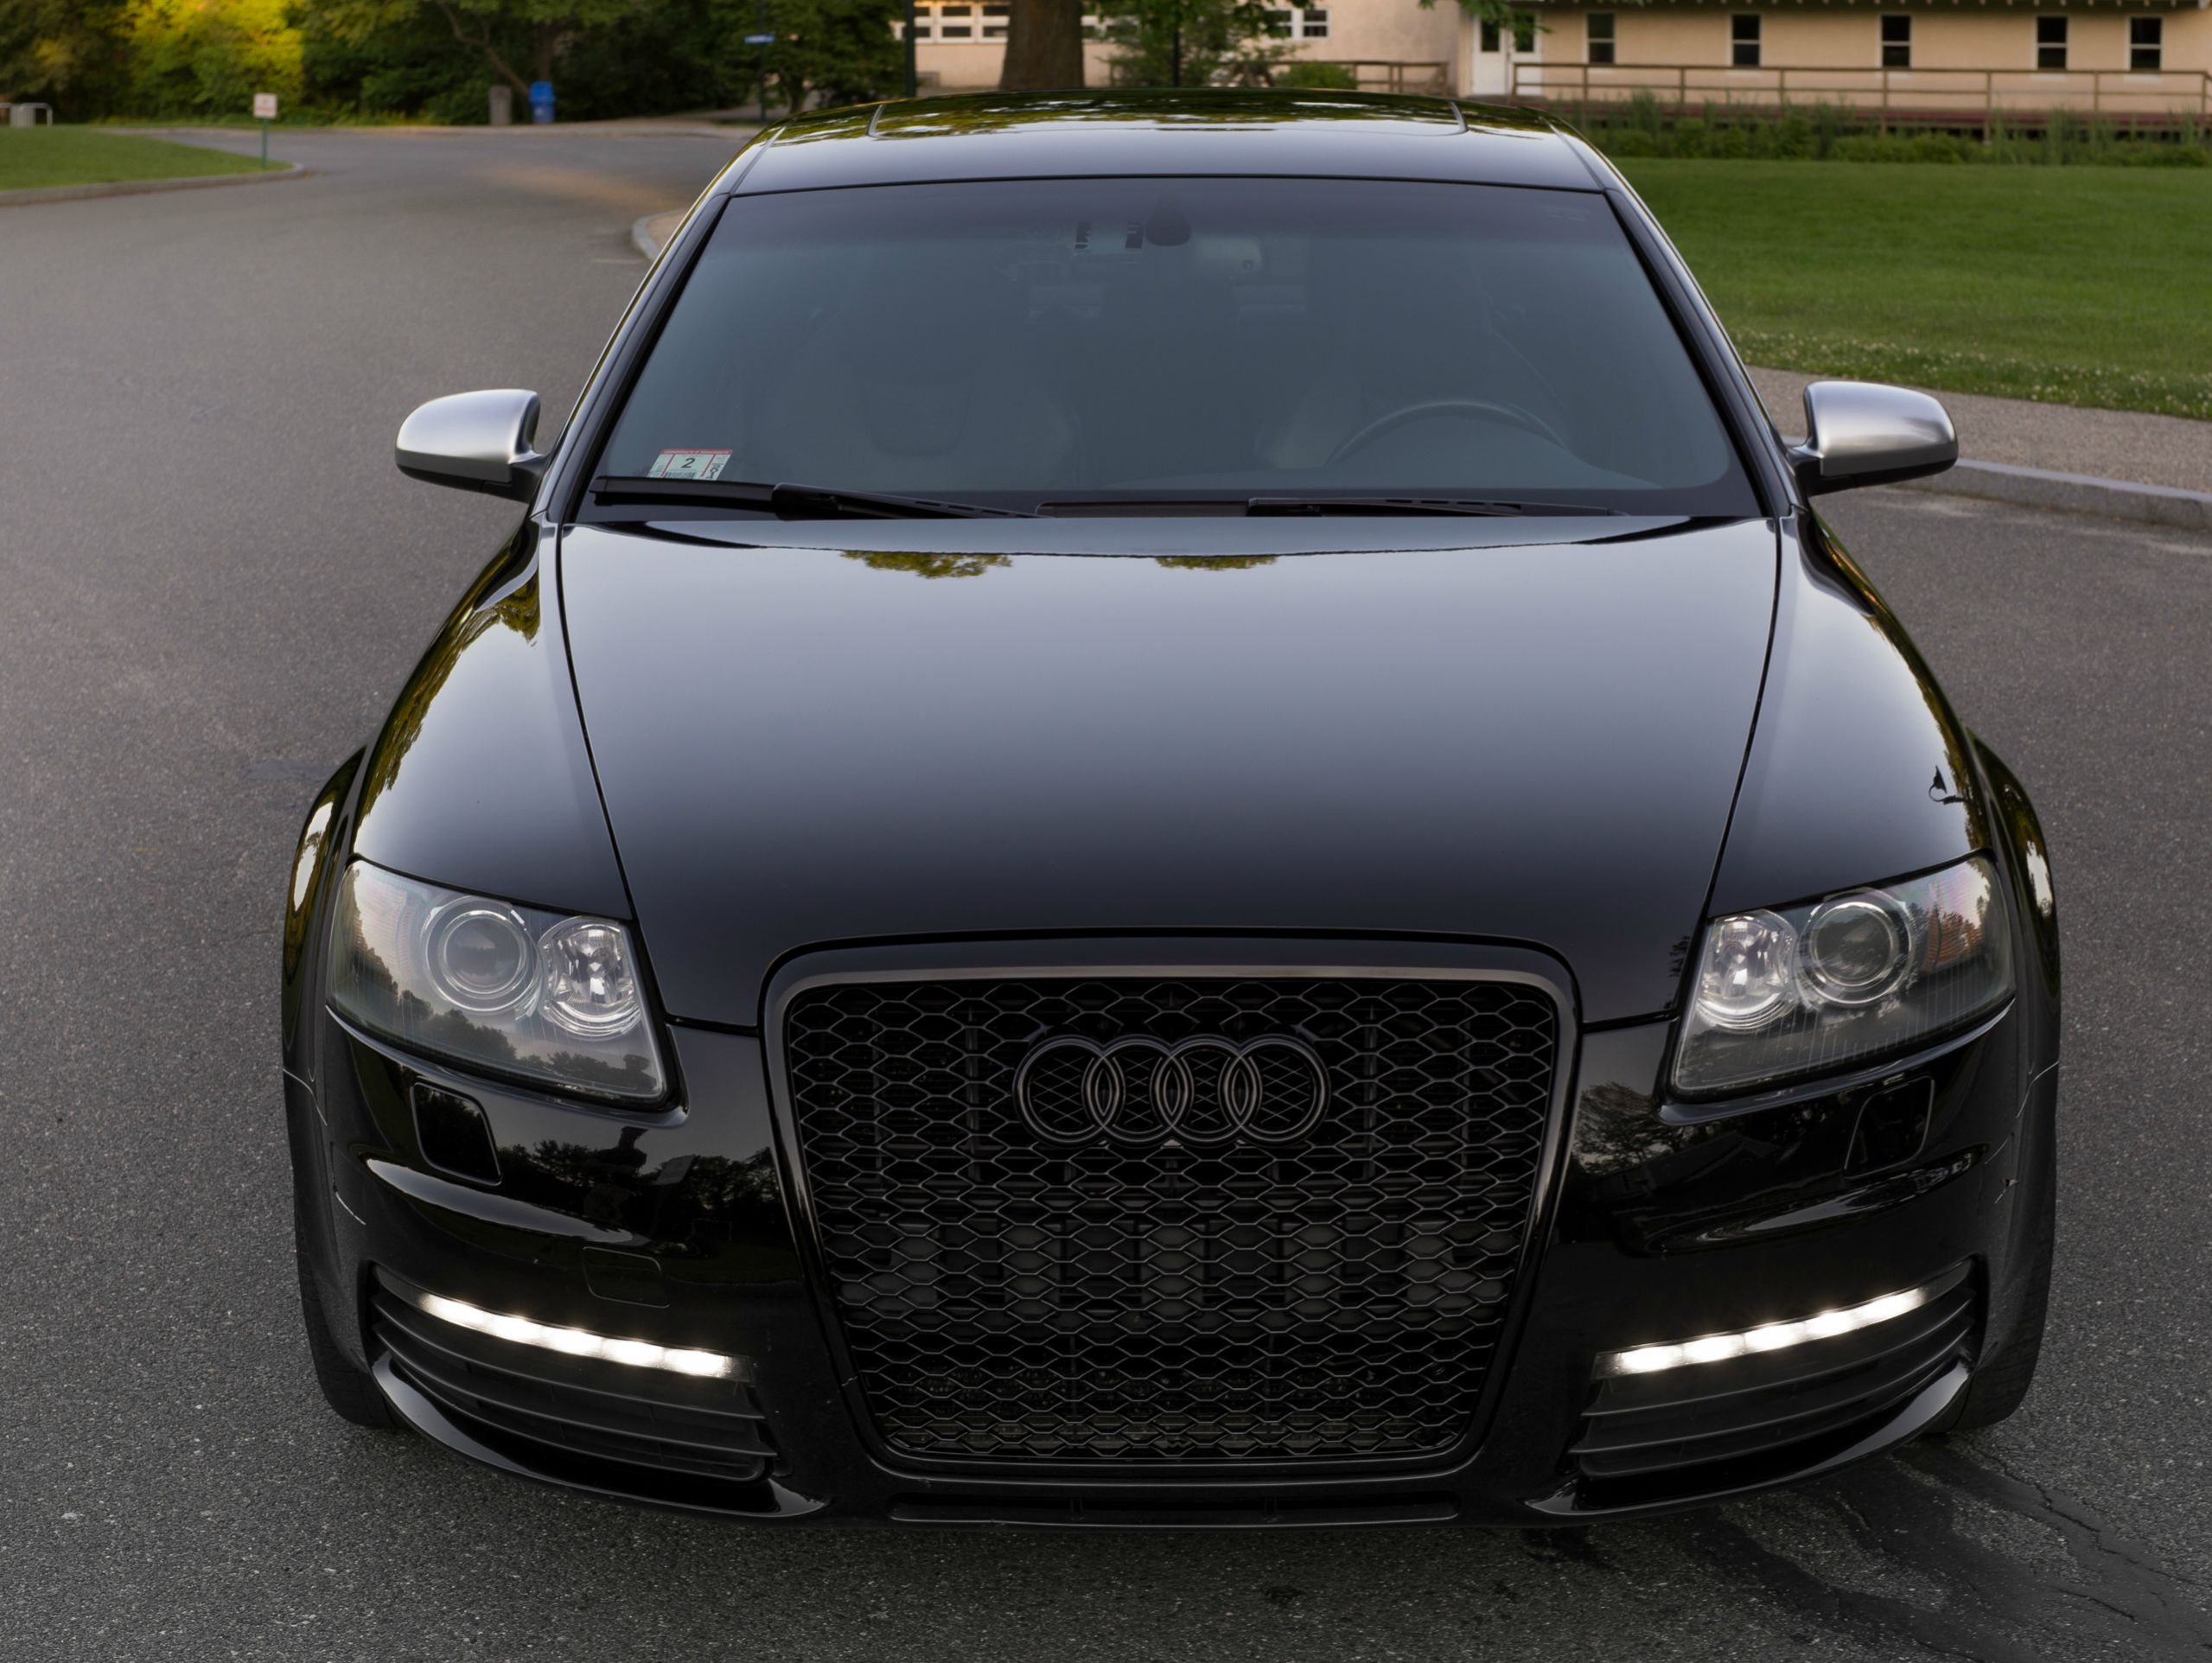 2007 audi a6 4f c6 pictures information and specs for Audi a6 4f interieur